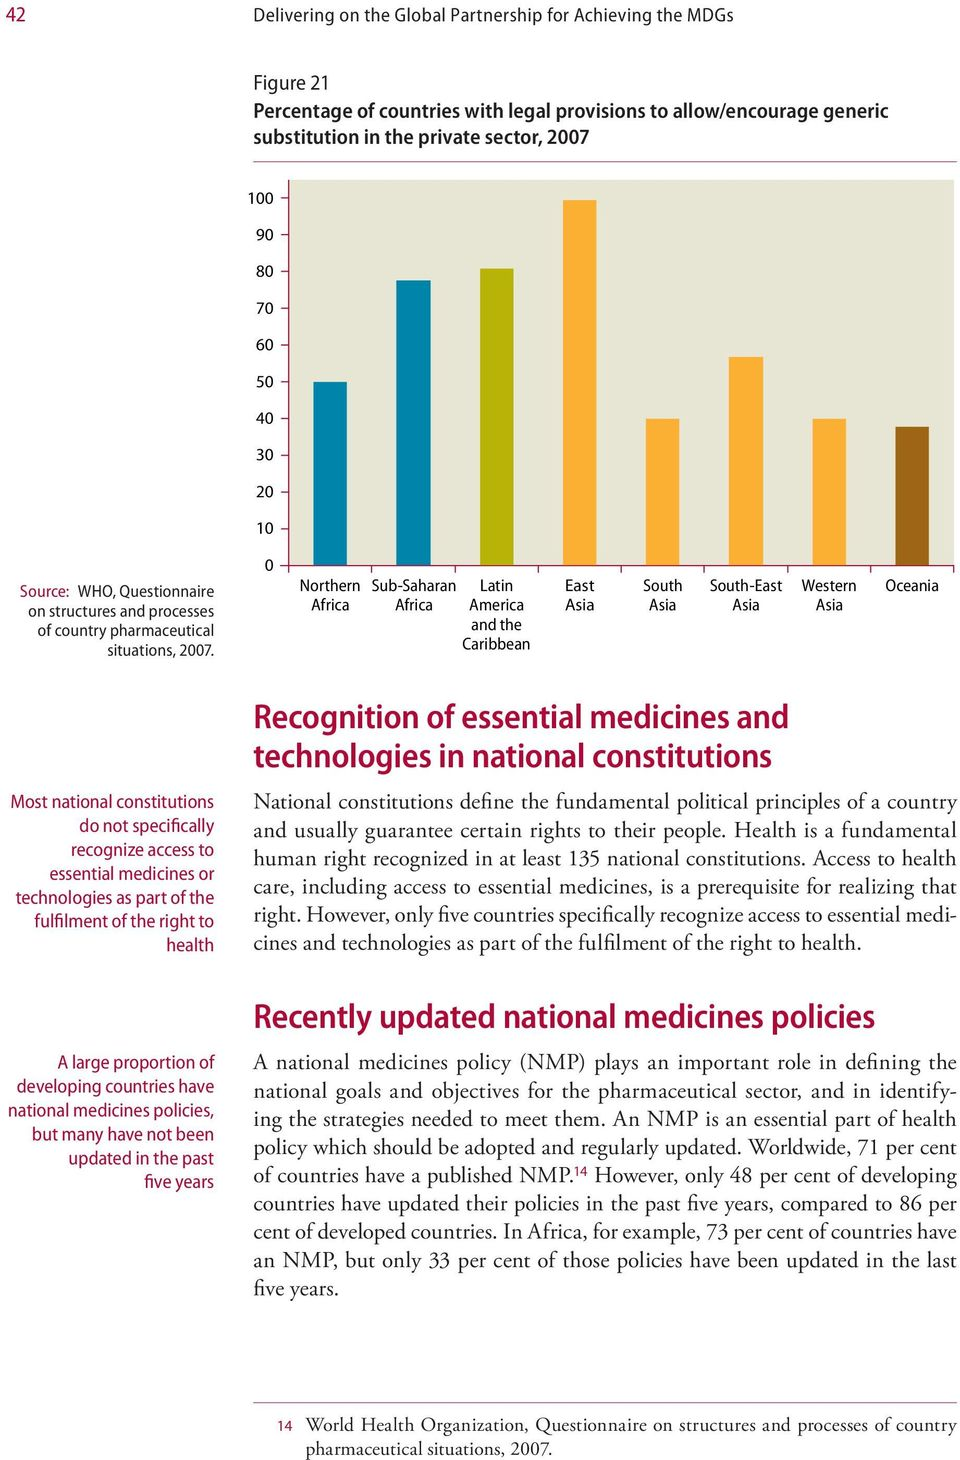 Northern Sub-Saharan Latin America and the Caribbean East South South-East Western Oceania Most national constitutions do not specifically recognize access to essential medicines or technologies as